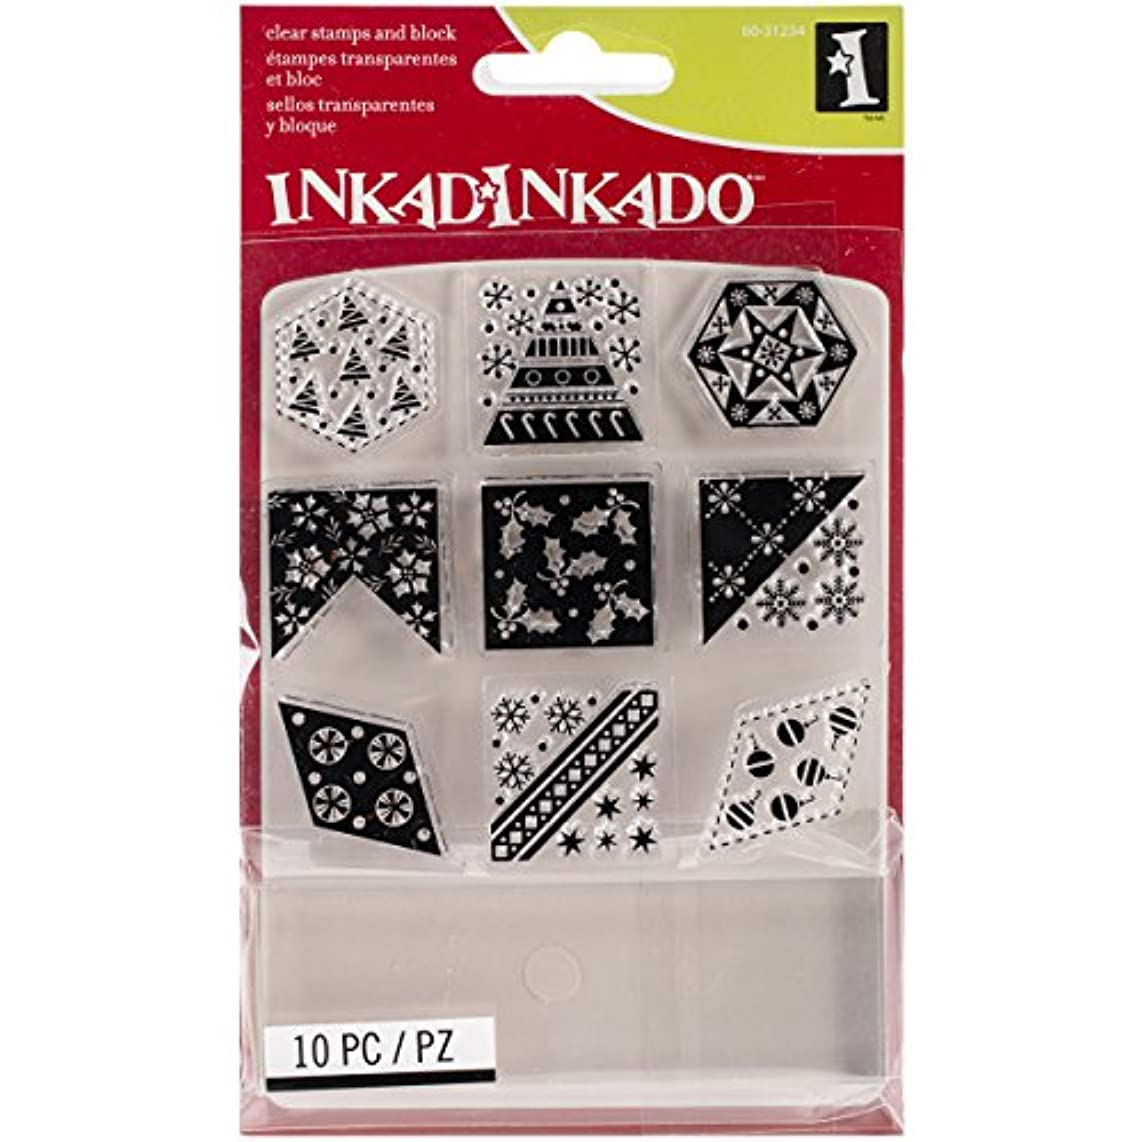 Inkadinkado Christmas Inchie Clear Stamps, 4 by 5.125-Inch, Christmas Quilt